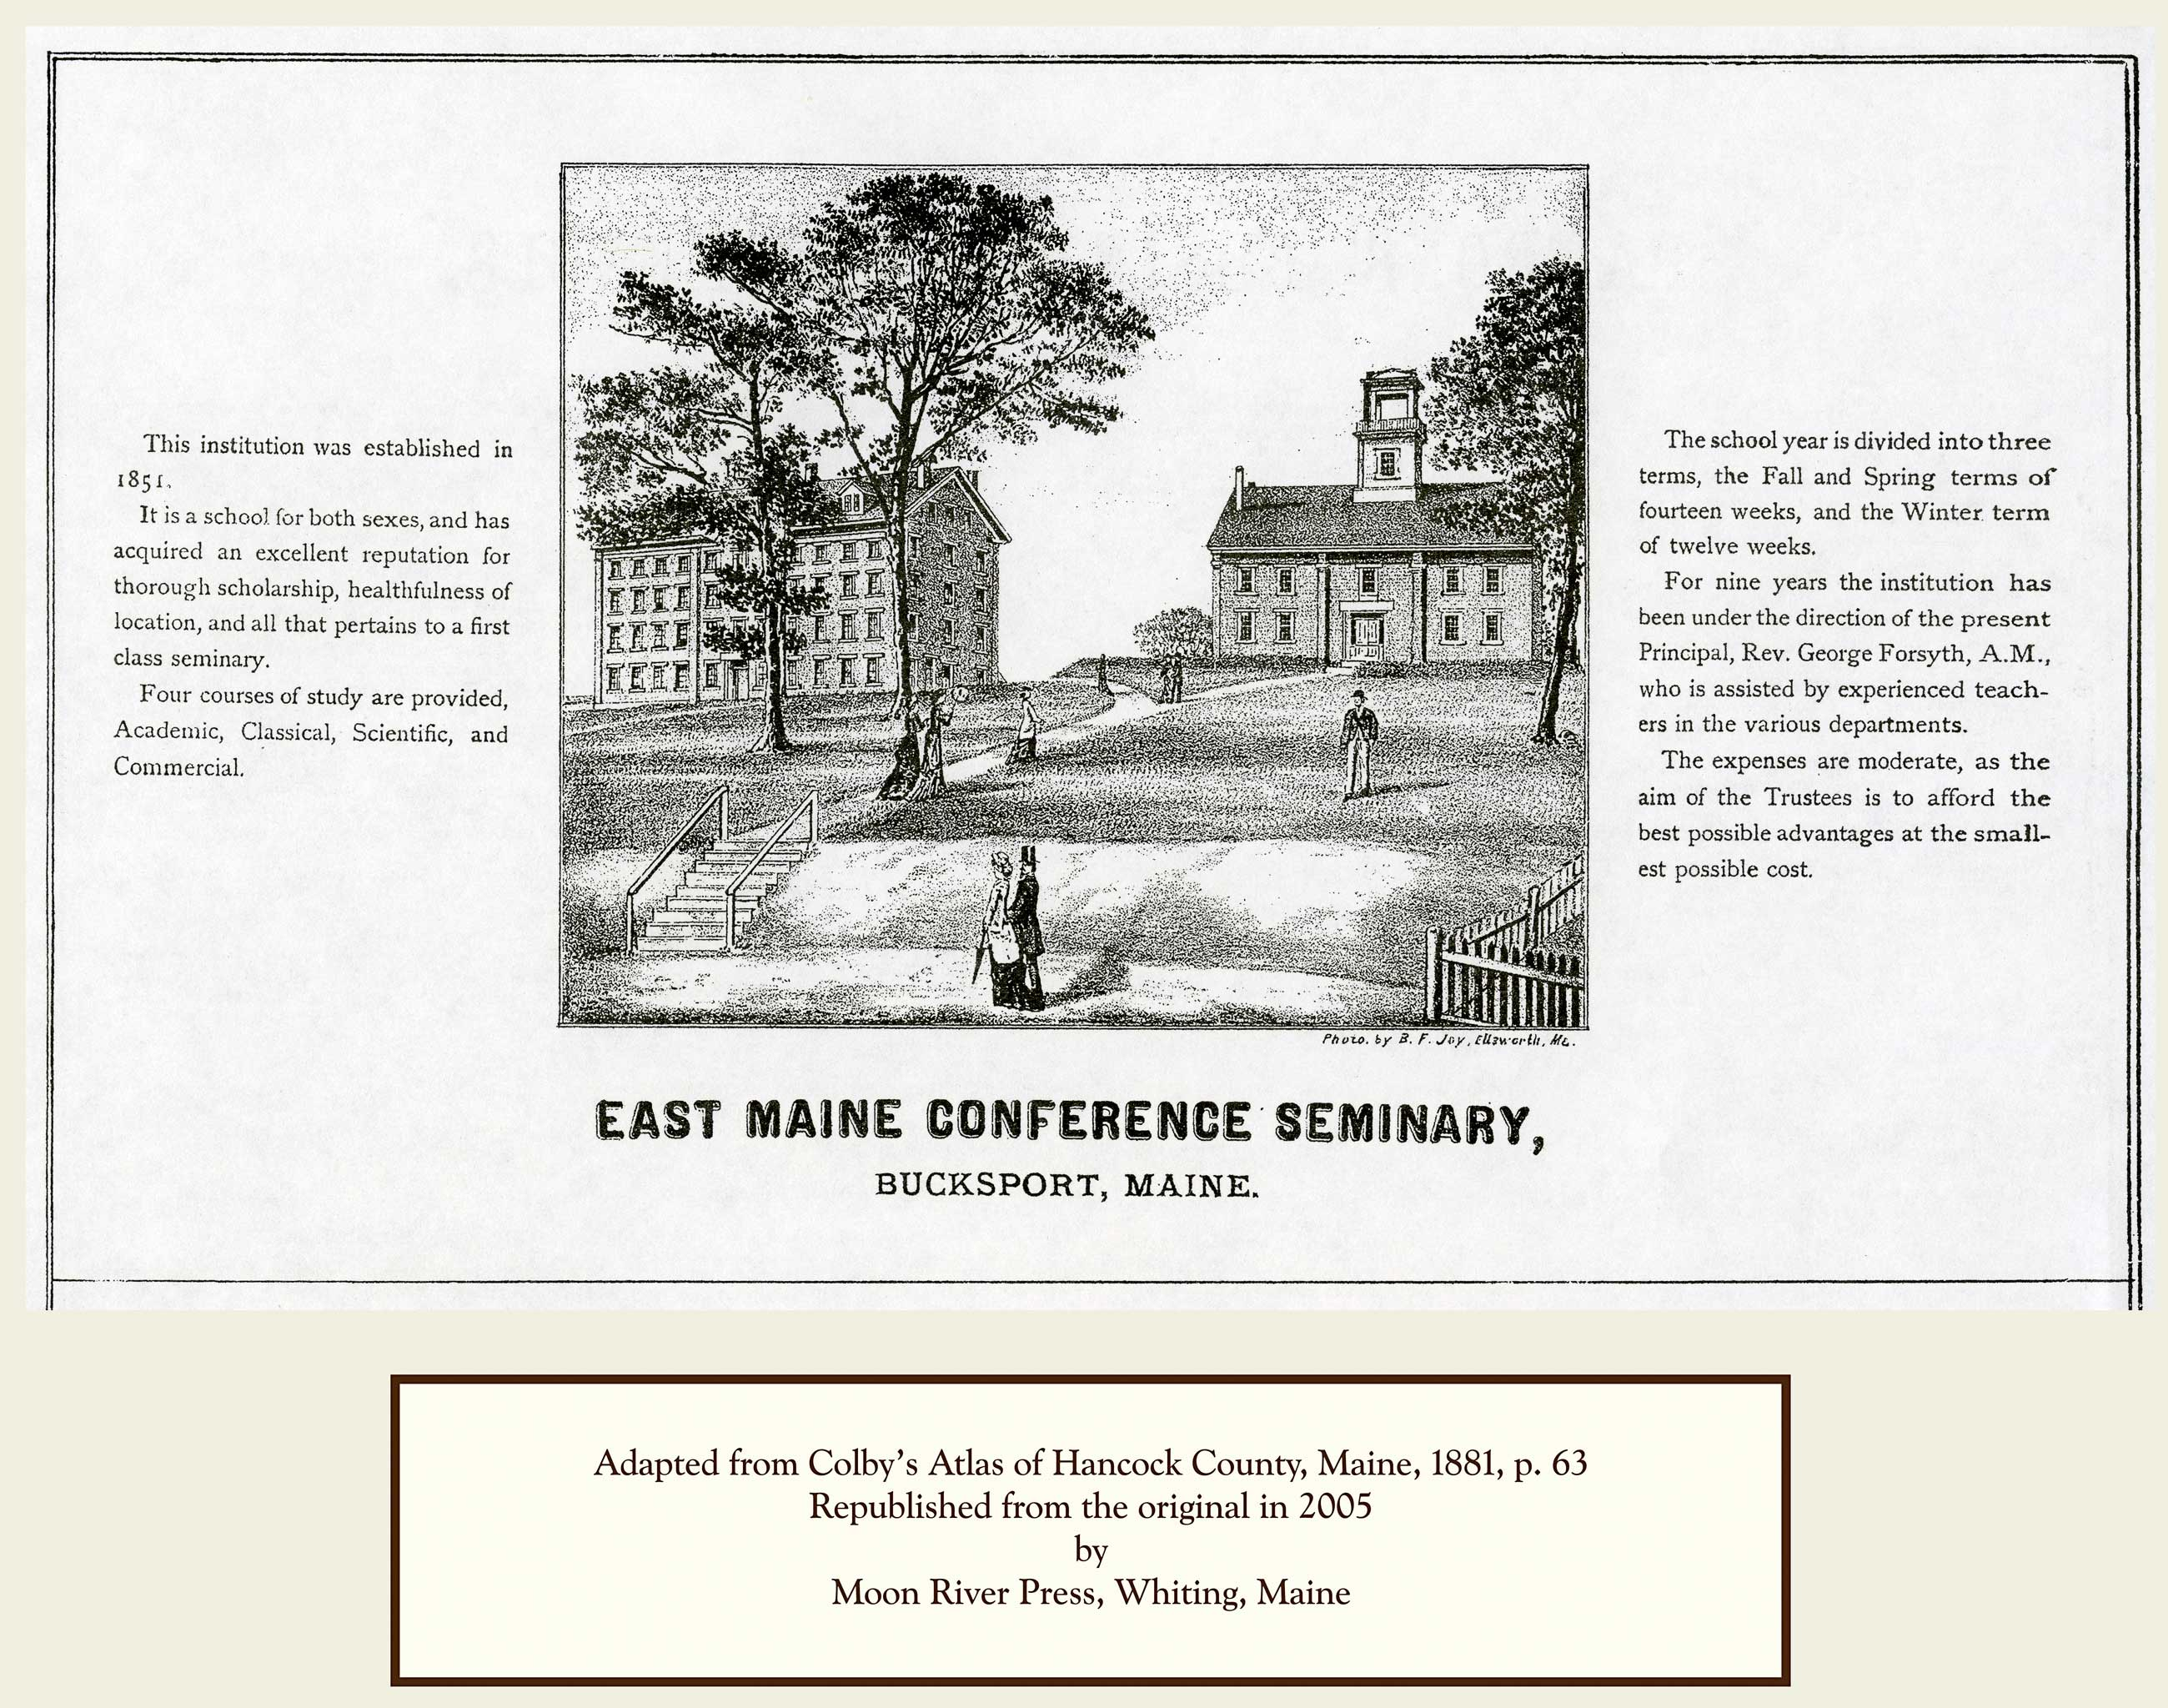 East Maine Conference Seminary